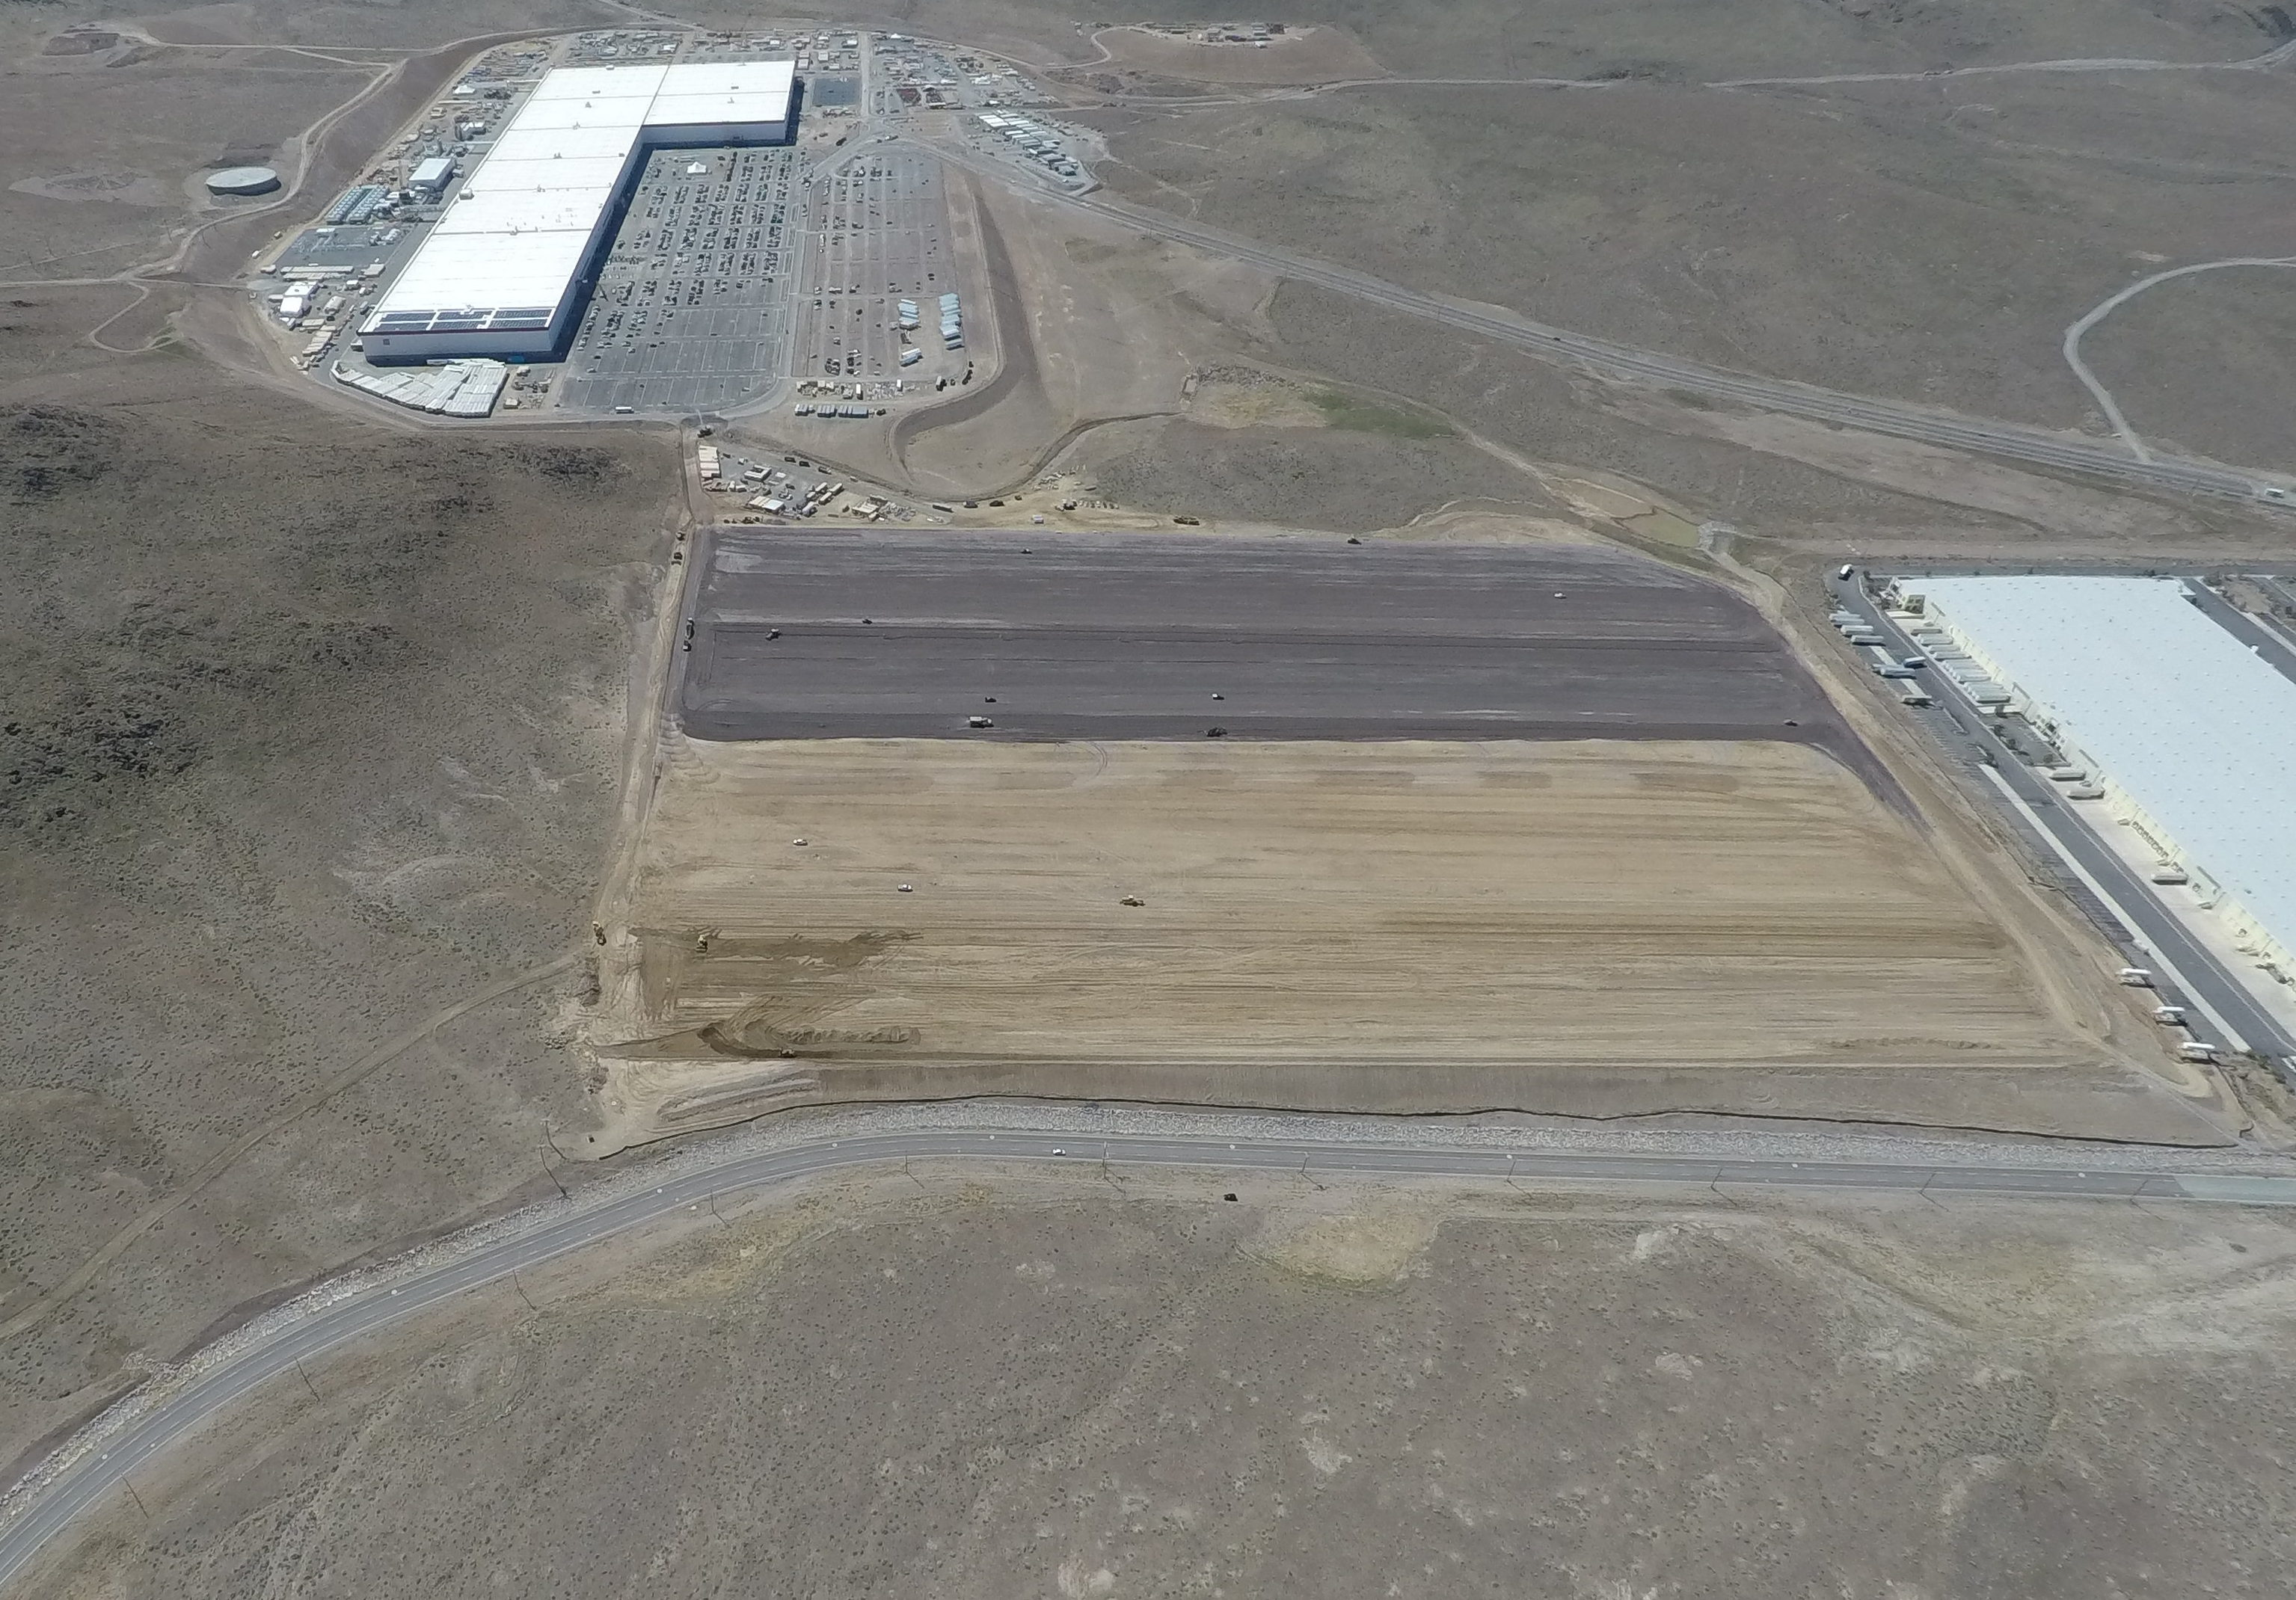 Tesla Gigafactory 1 as of 4/2018 [Credit: Teslarati]